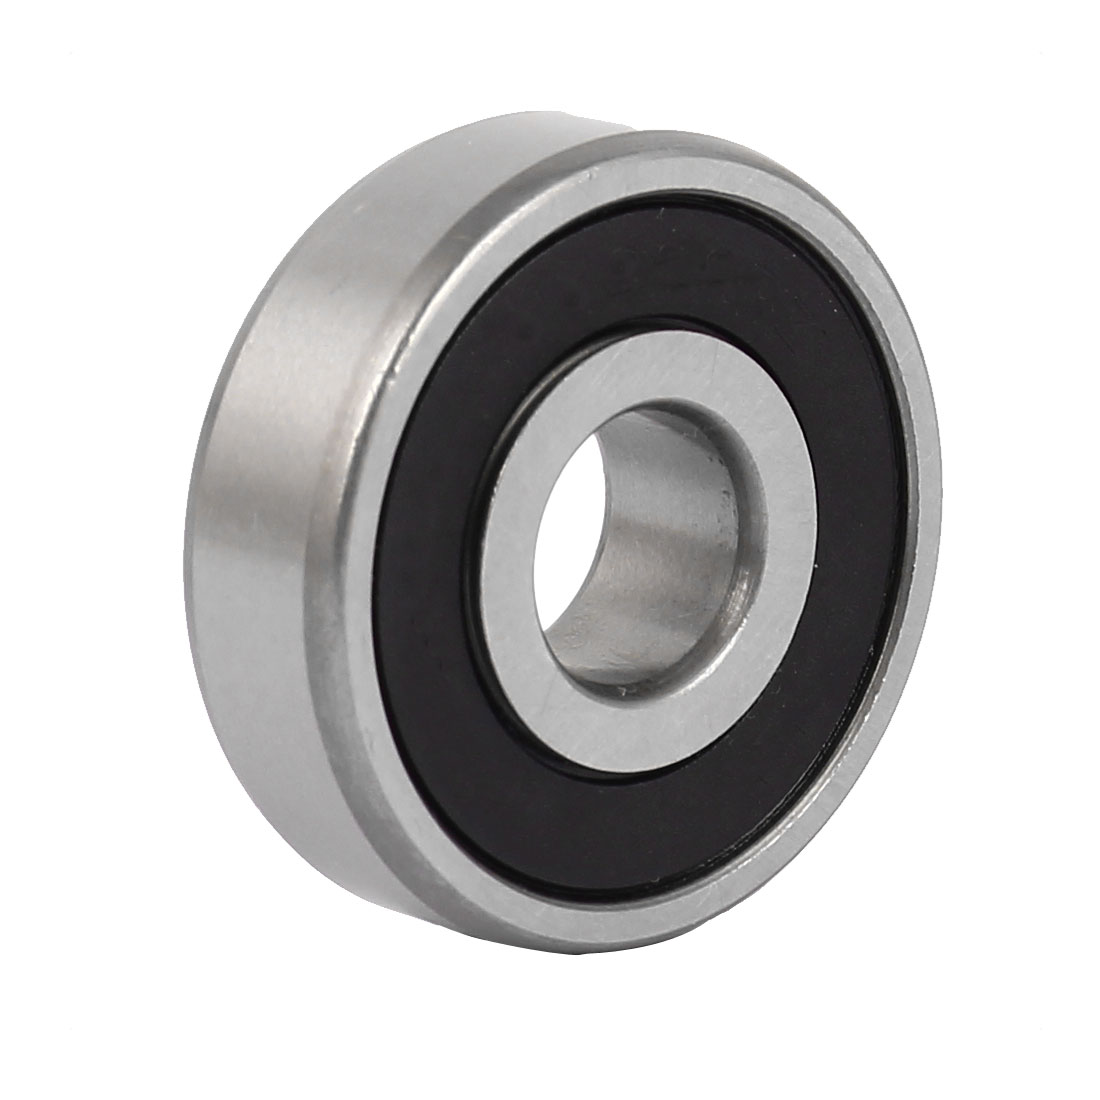 RZ6201 32mm x 12mm x 10mm Single Row Double Shielded Deep Groove Ball Bearing